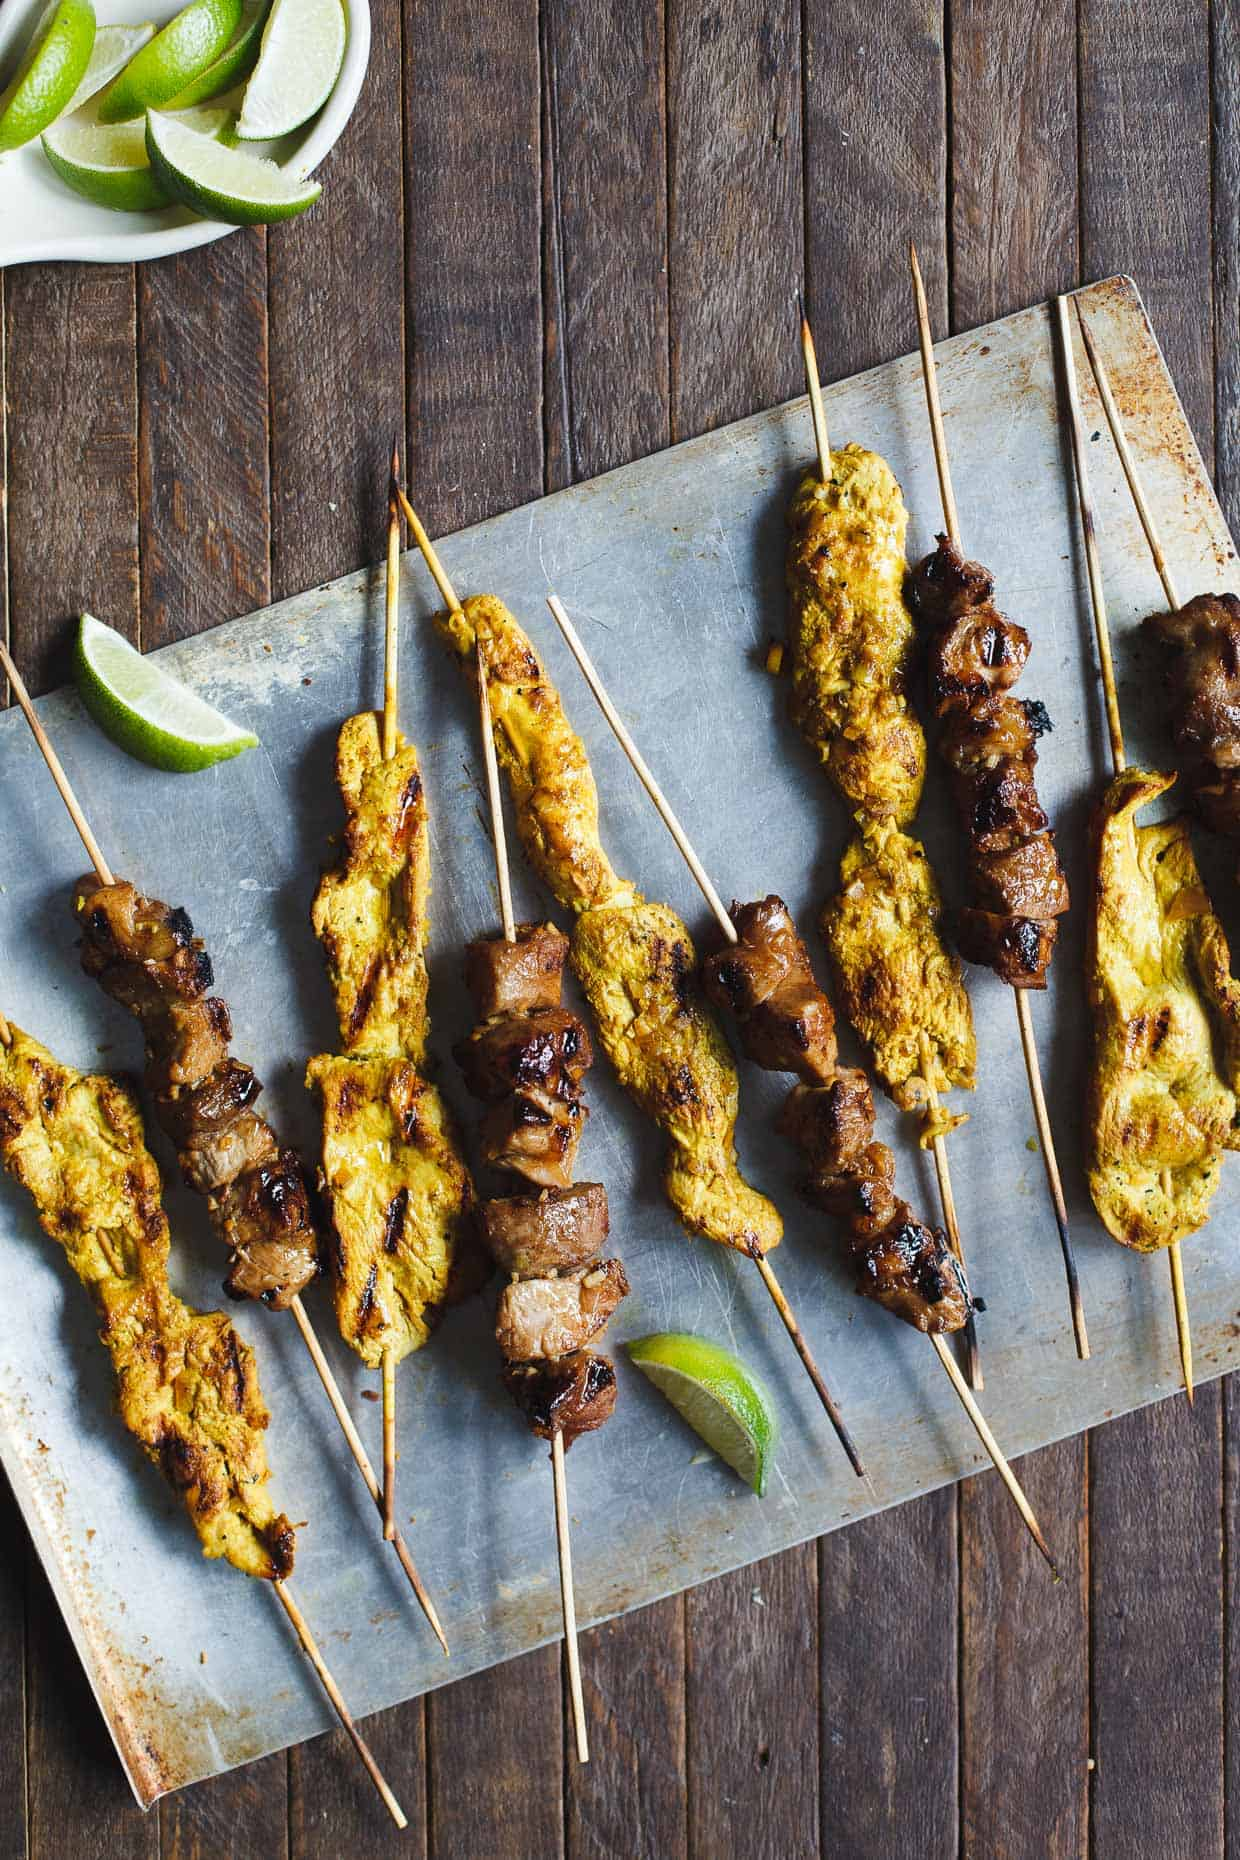 Ginger Lemongrass Pork Skewers